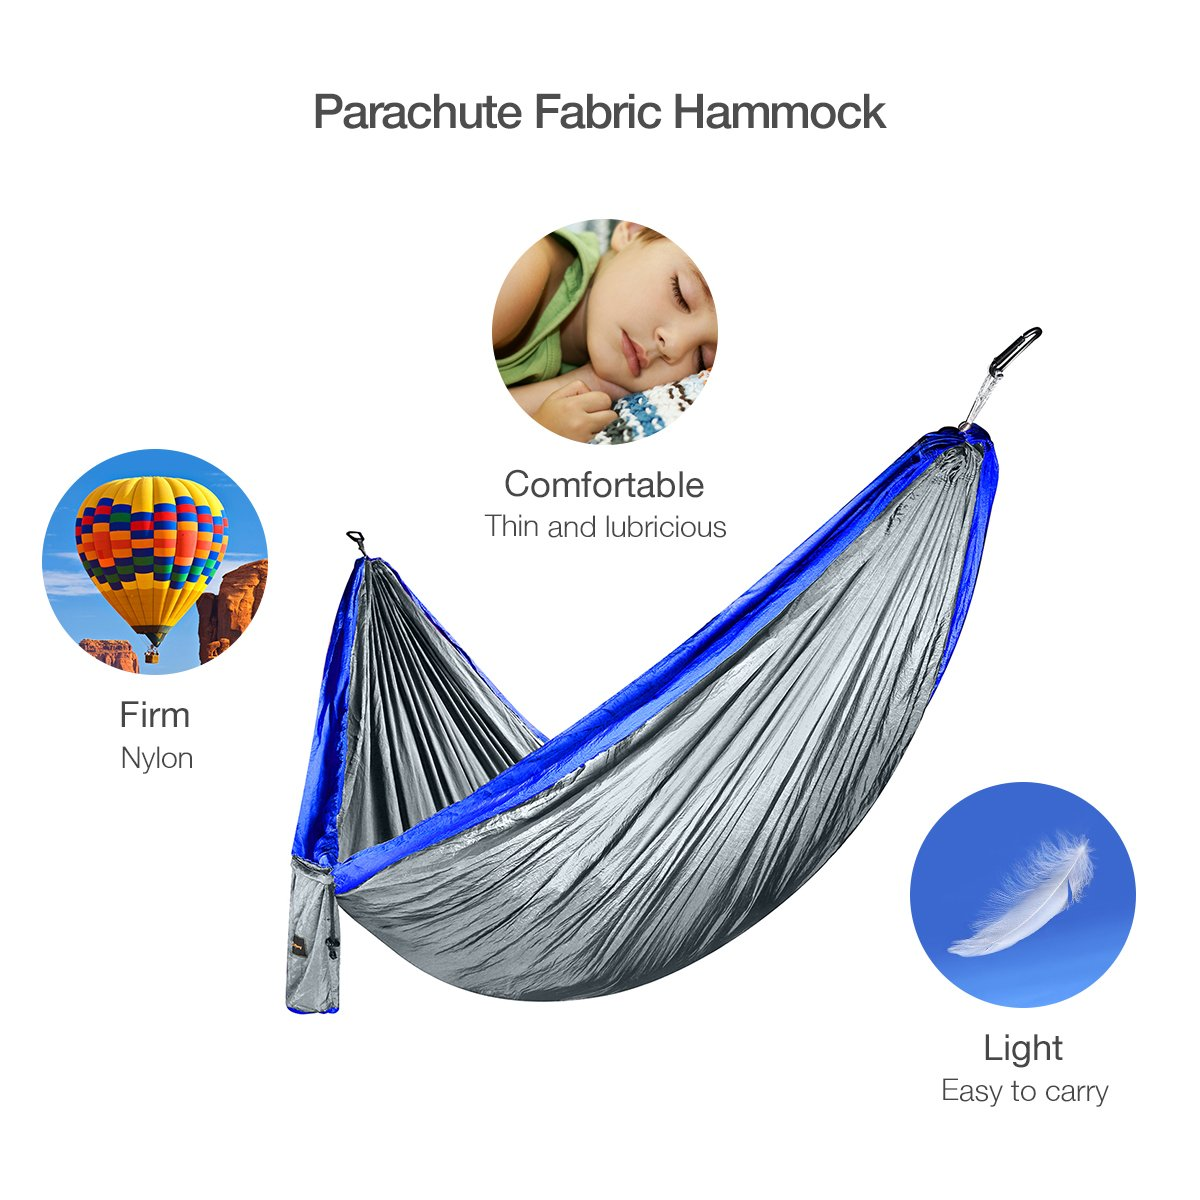 isYoung Parachute Fabric Hammock, Durable and Portable , Suit for 2 Persons, Tree Tent, Outdoors (Blue)